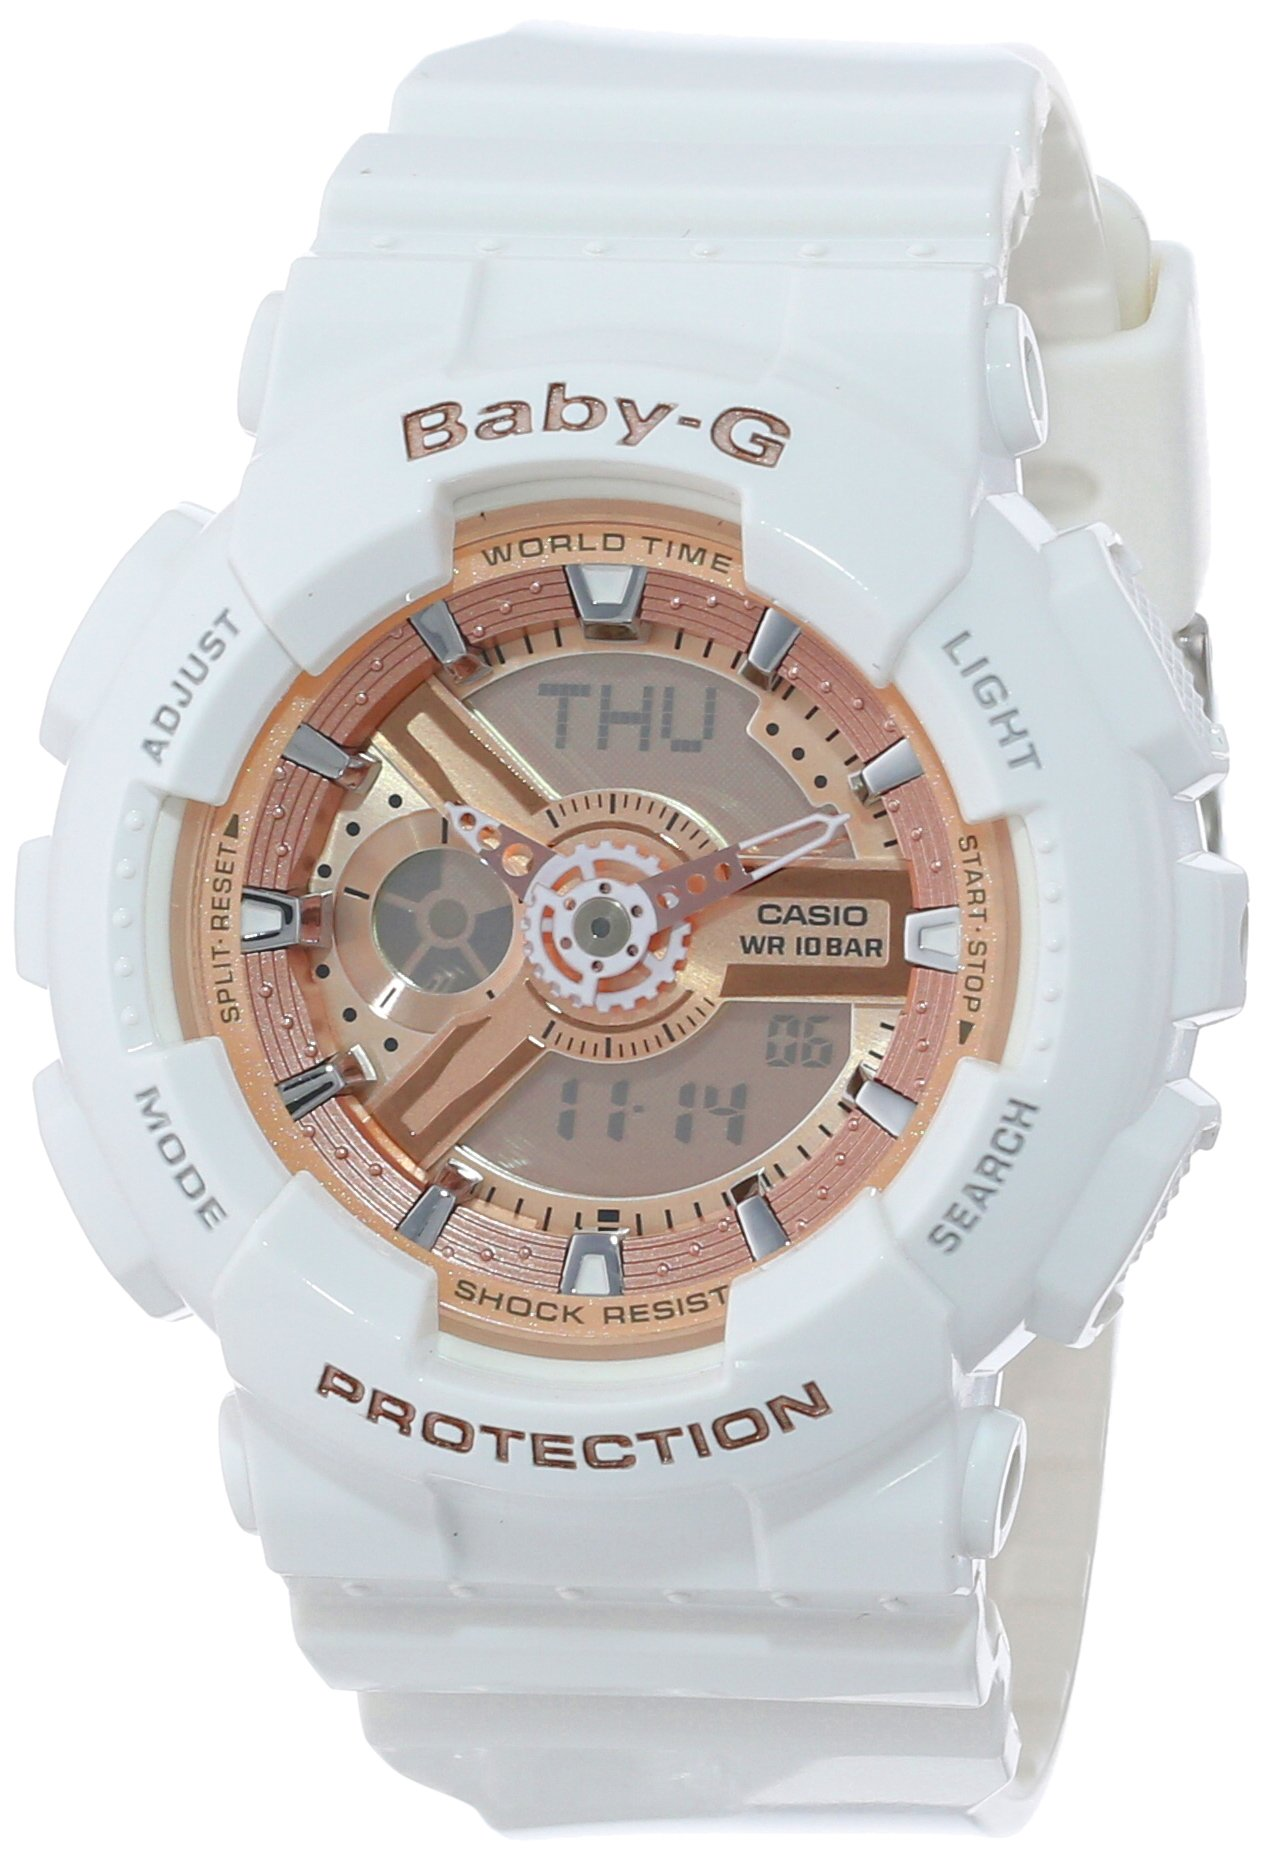 Casio Women's BA-110-7A1CR Baby-G Rose Gold Analog-Digital Watch with White Resin Band by Casio